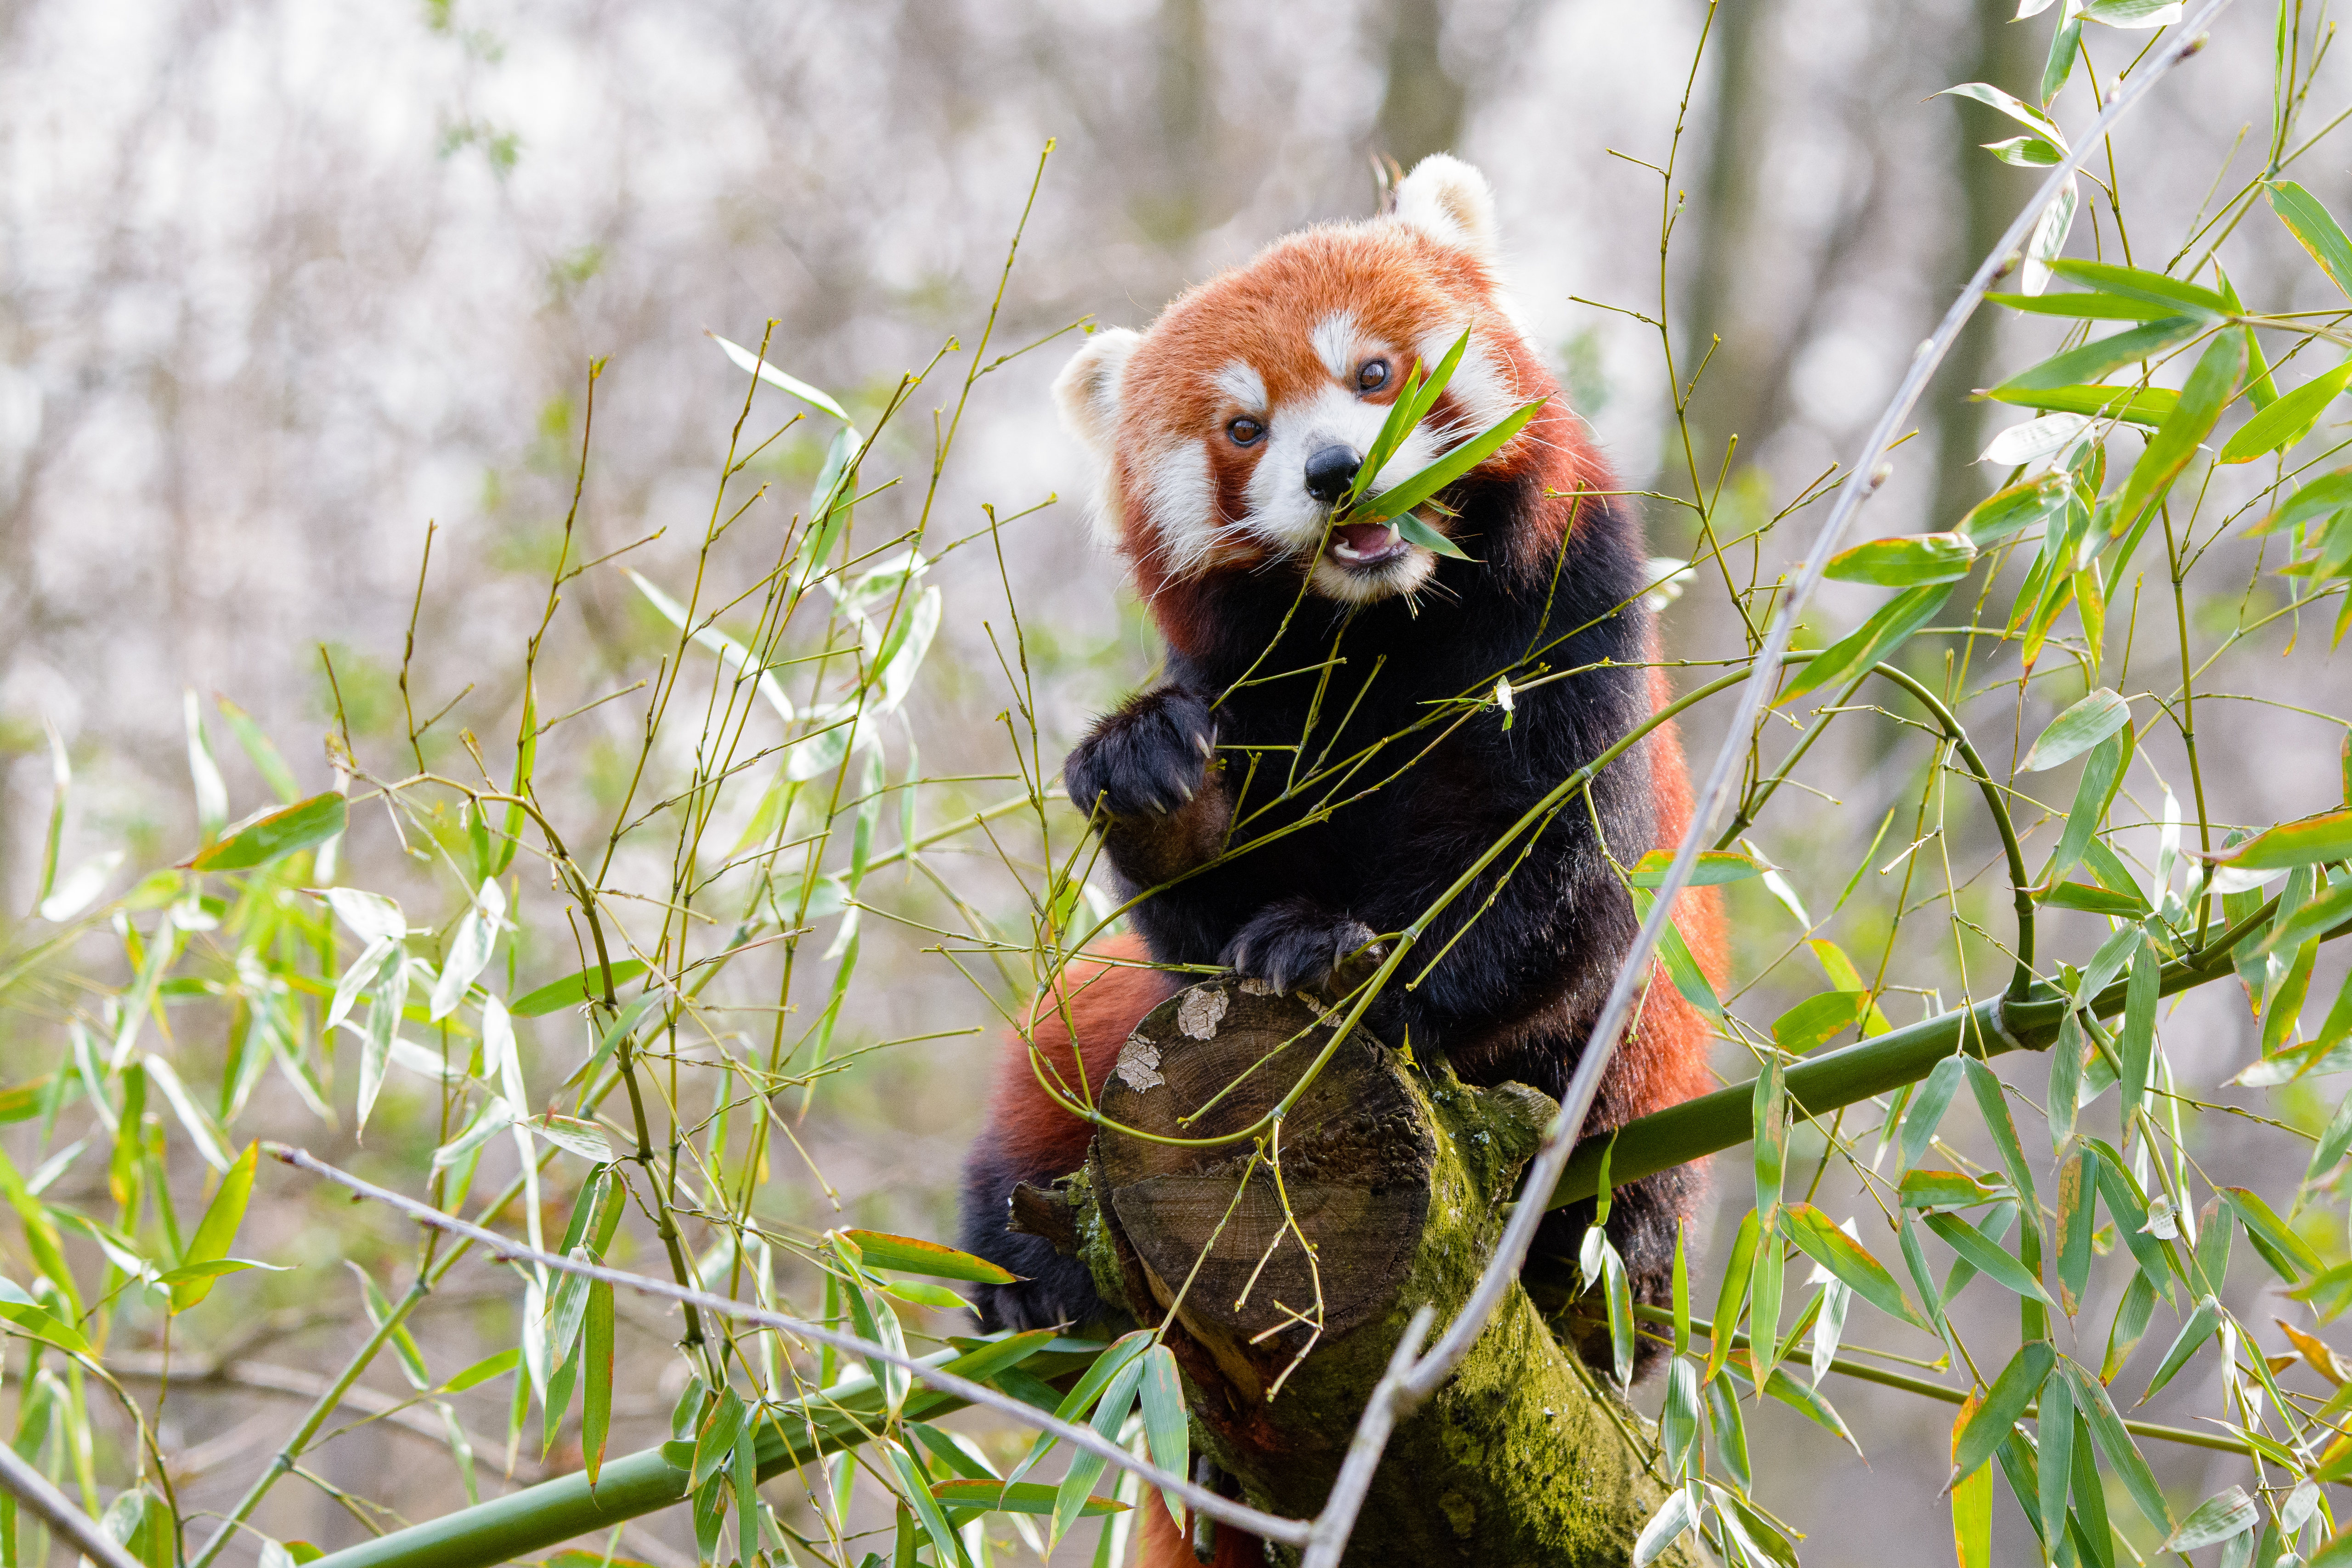 144880 download wallpaper Animals, Red Panda, Panda, Nice, Sweetheart, Bamboo screensavers and pictures for free